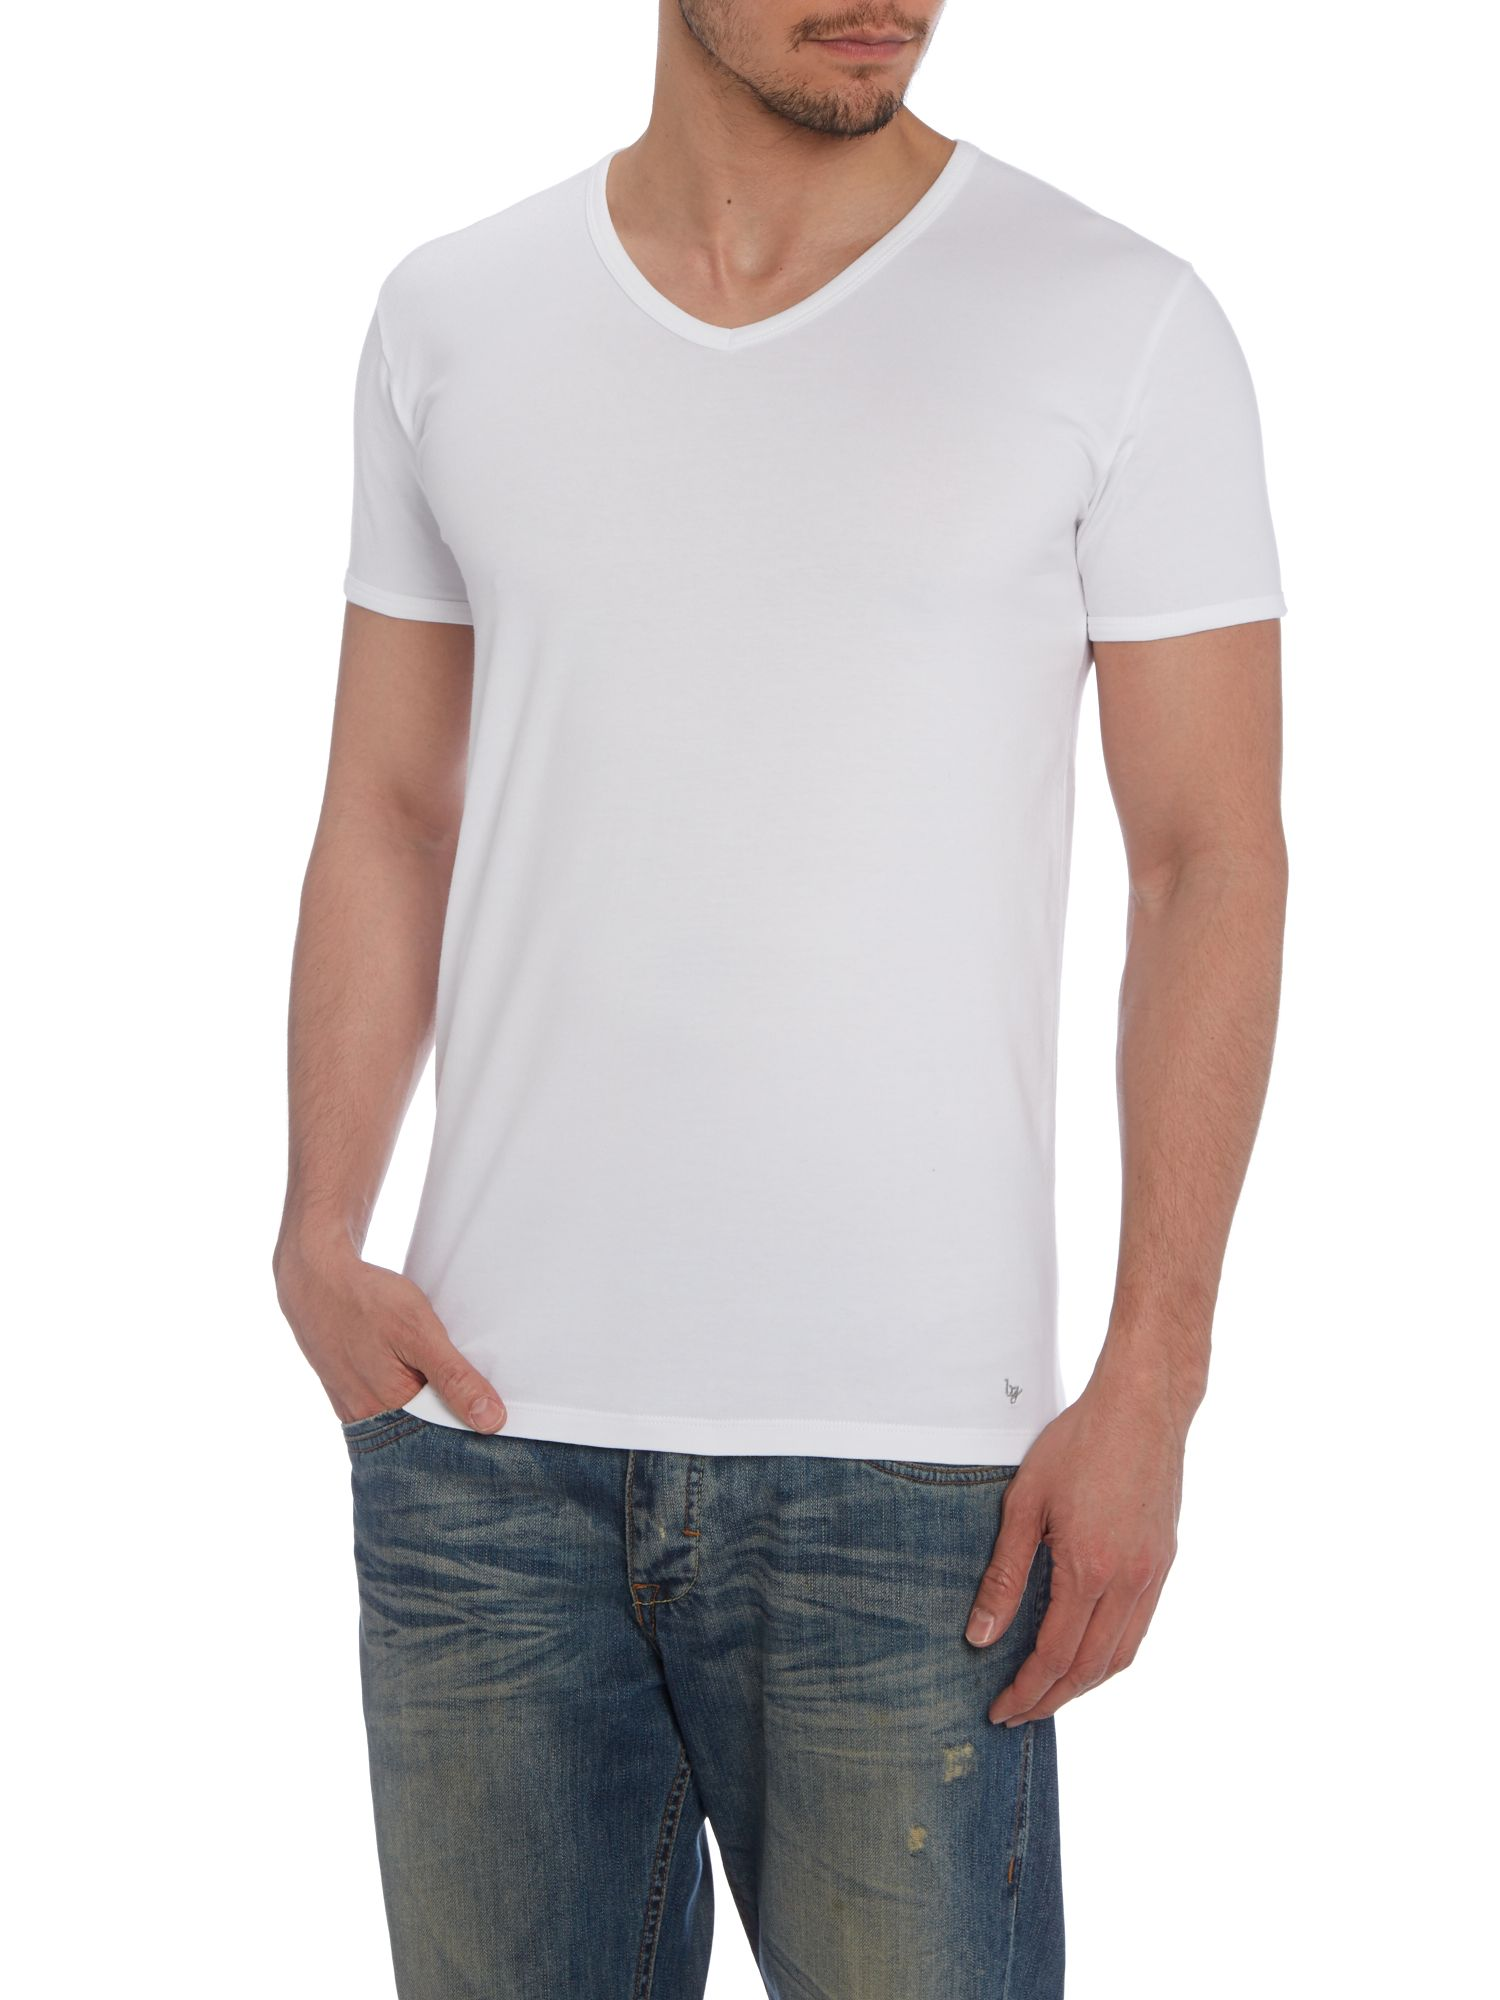 Fitted v neck